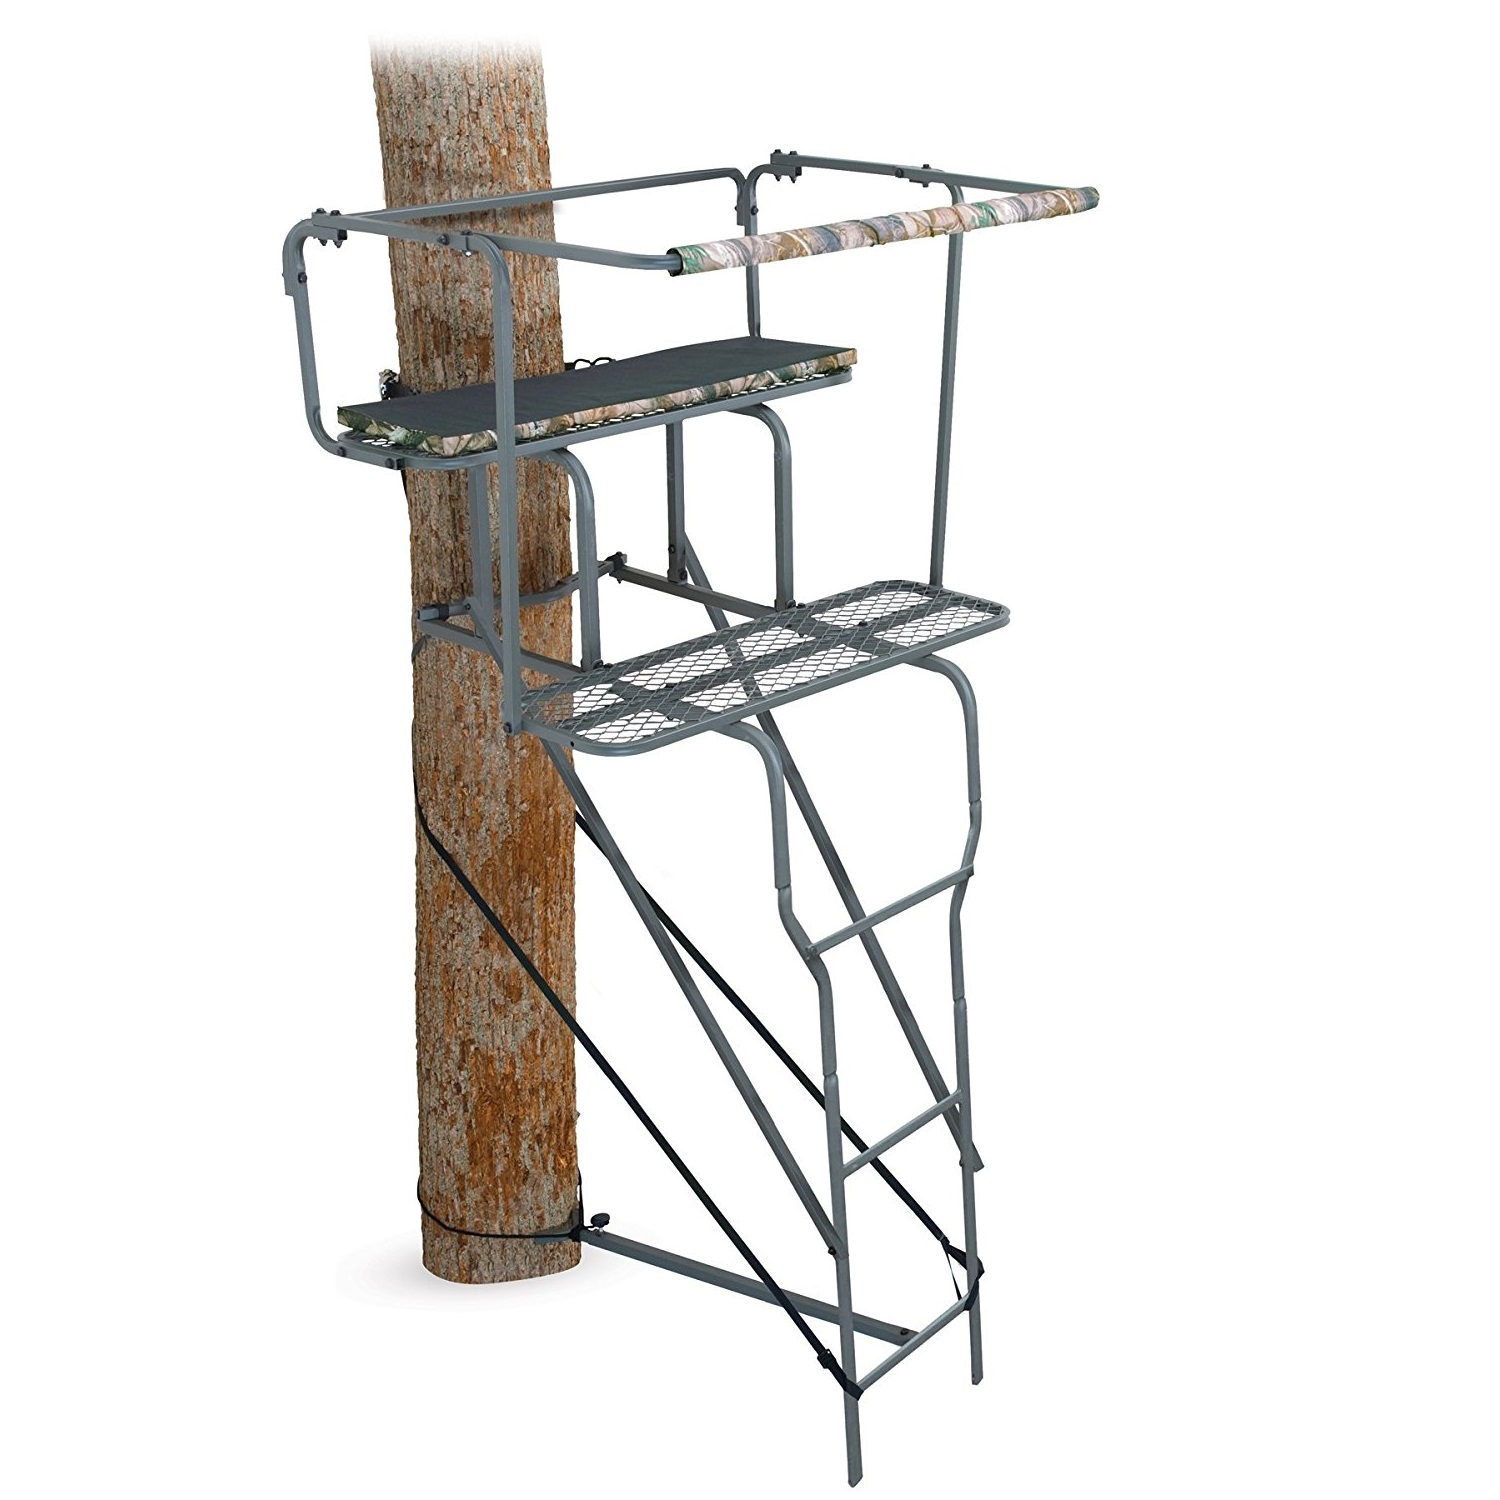 Ameristep Two-Man Ladder Stand